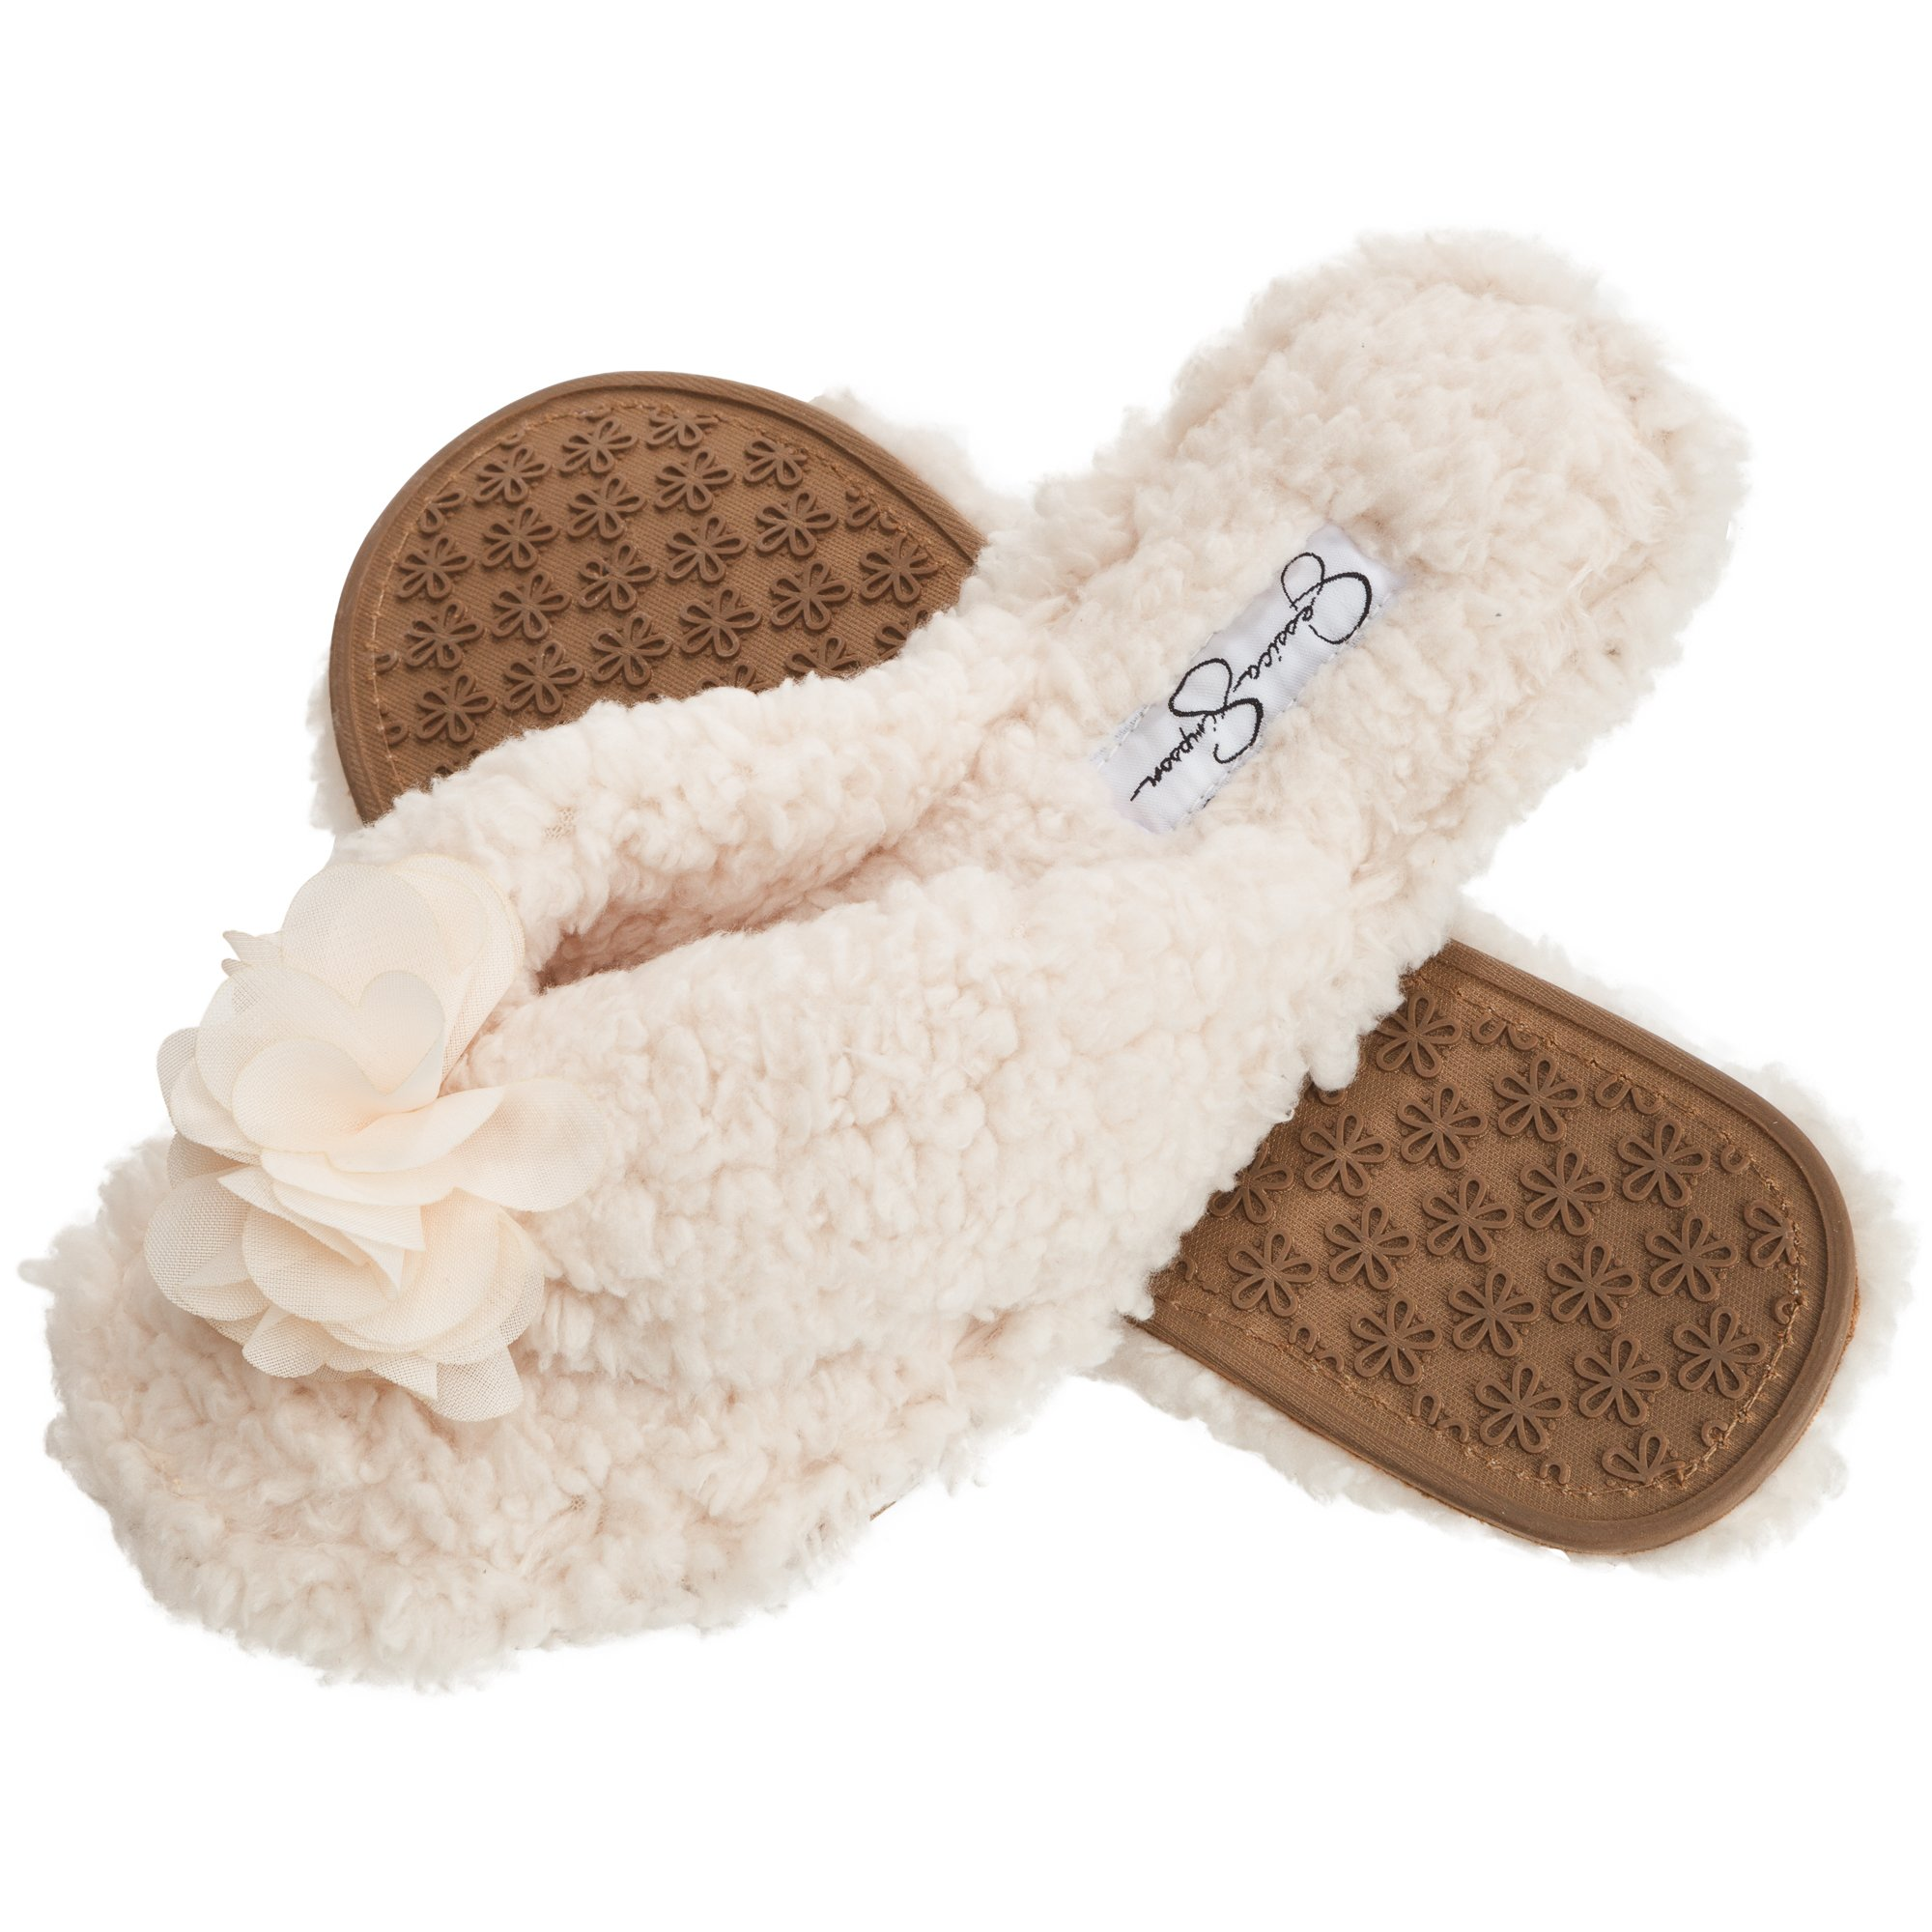 Slippers Reasonable Womens Colorblock Fur Slide Slippers Forever Collectibles House Shoes